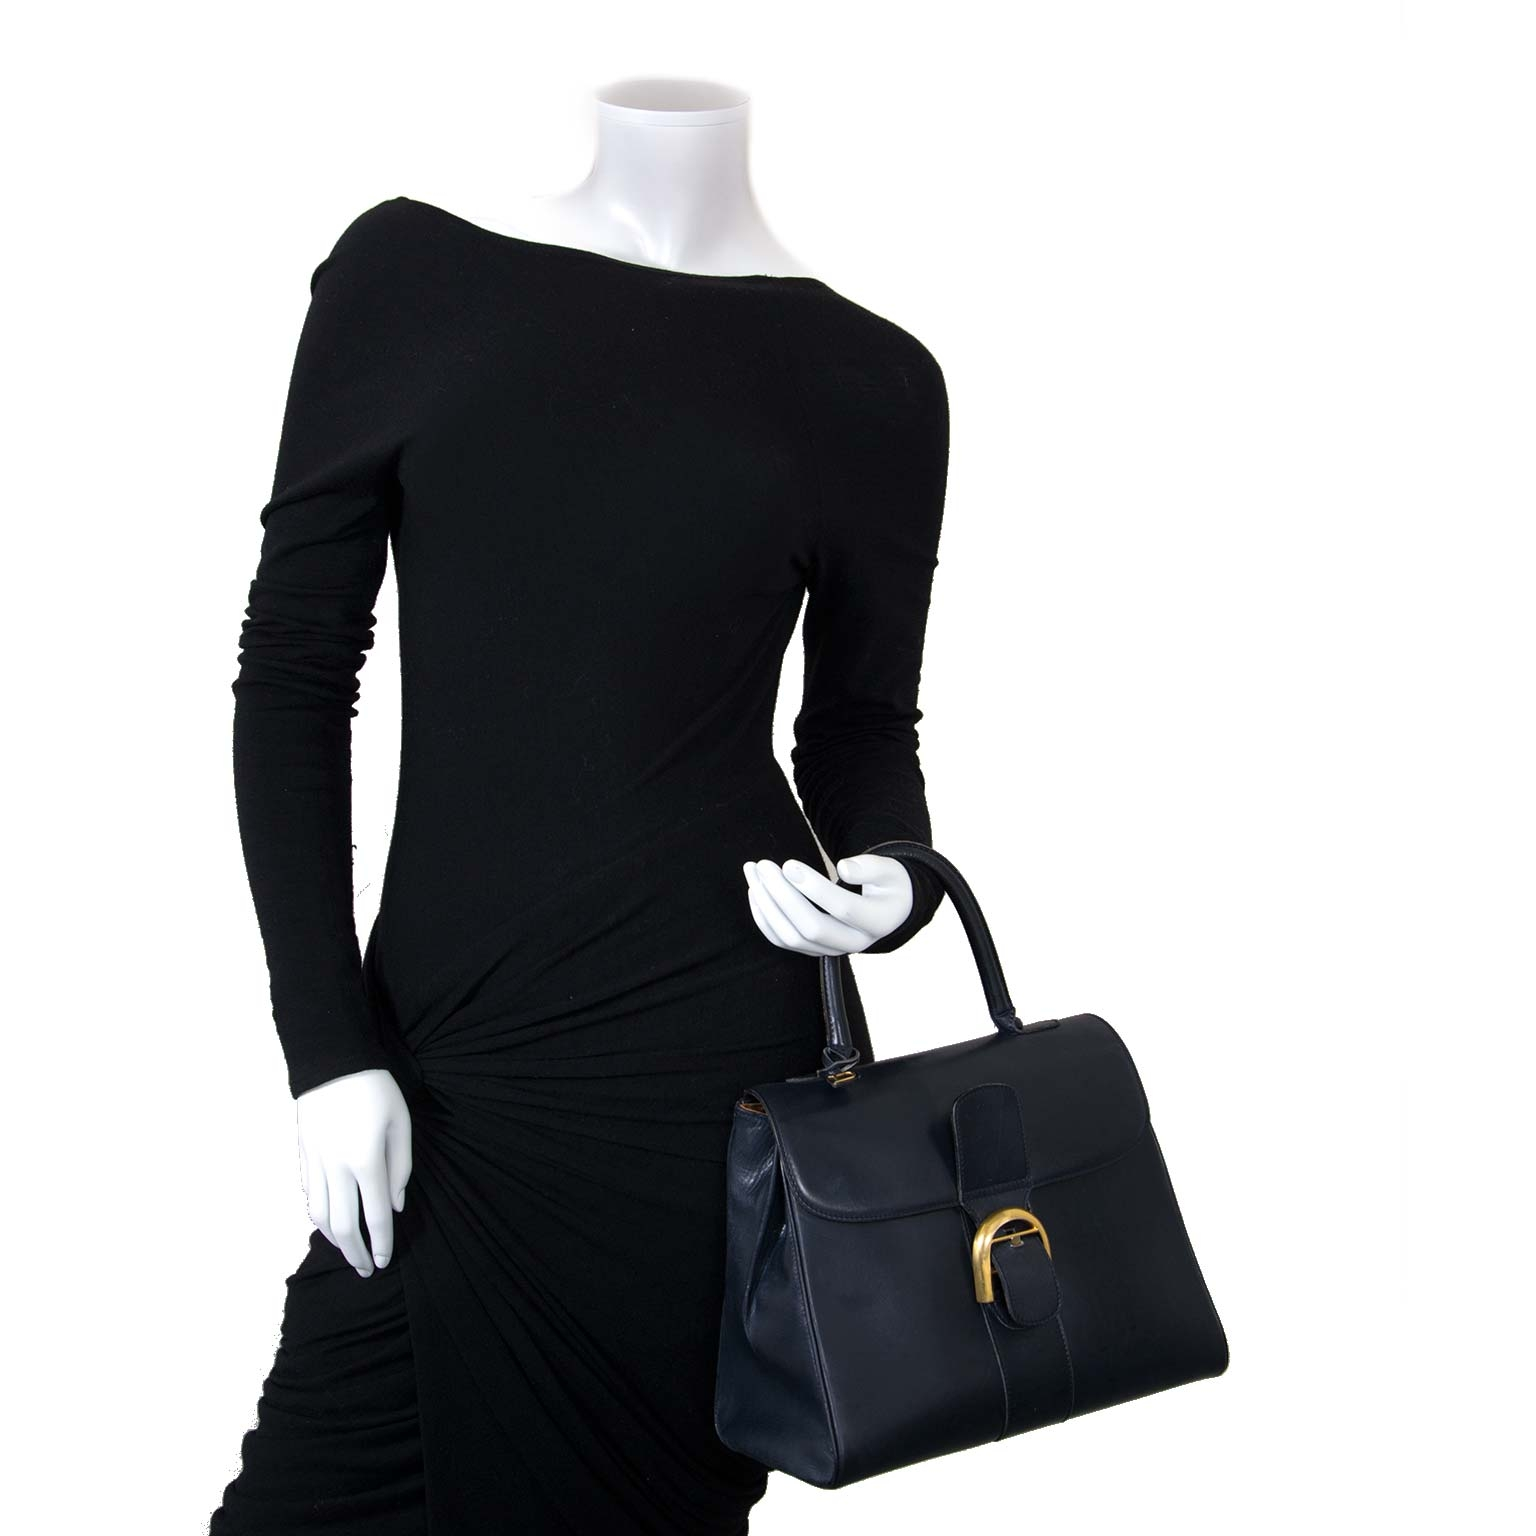 delvaux brillant dark blue mm bag now for sale at labellov vintage fashion webshop belgium